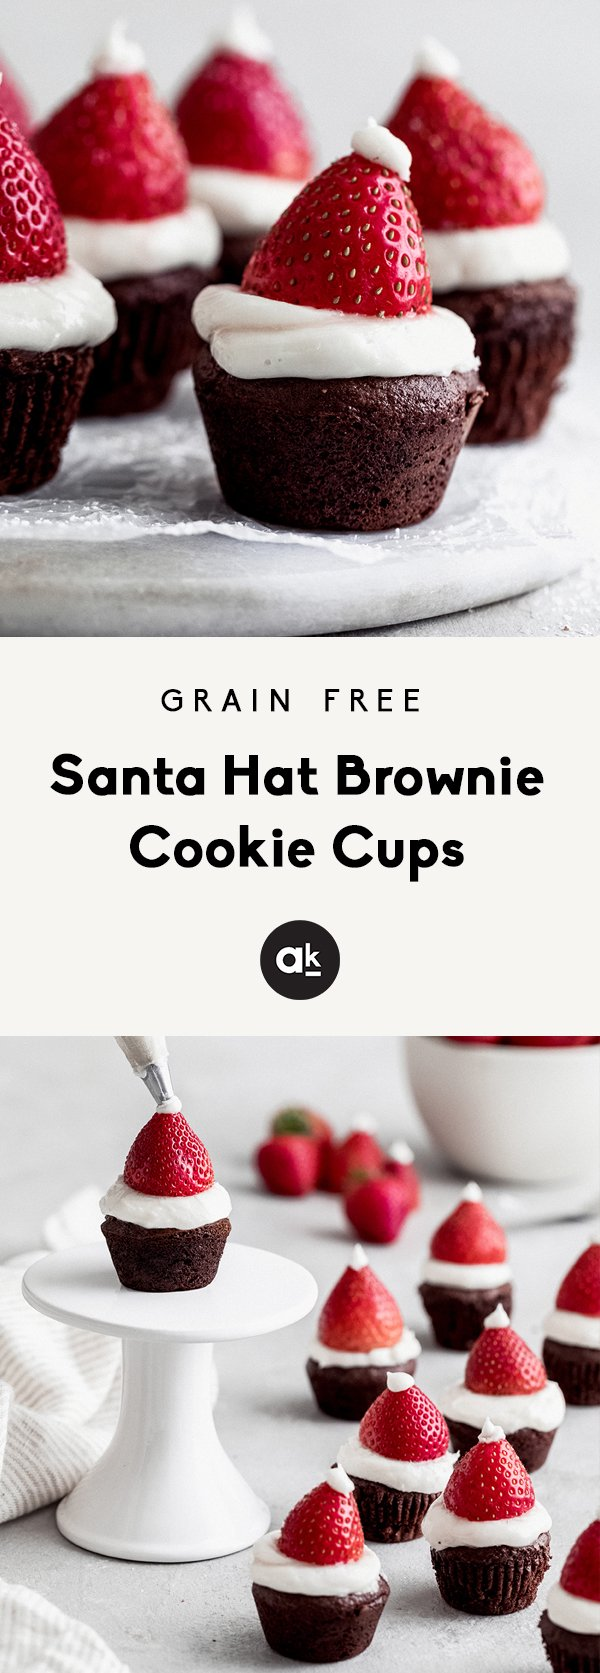 Adorable Santa Hat Brownie Cookie Cups that are perfect for the holiday season. Easy to make, gluten free and so fudgy! This recipe is in partnership with ALDI.